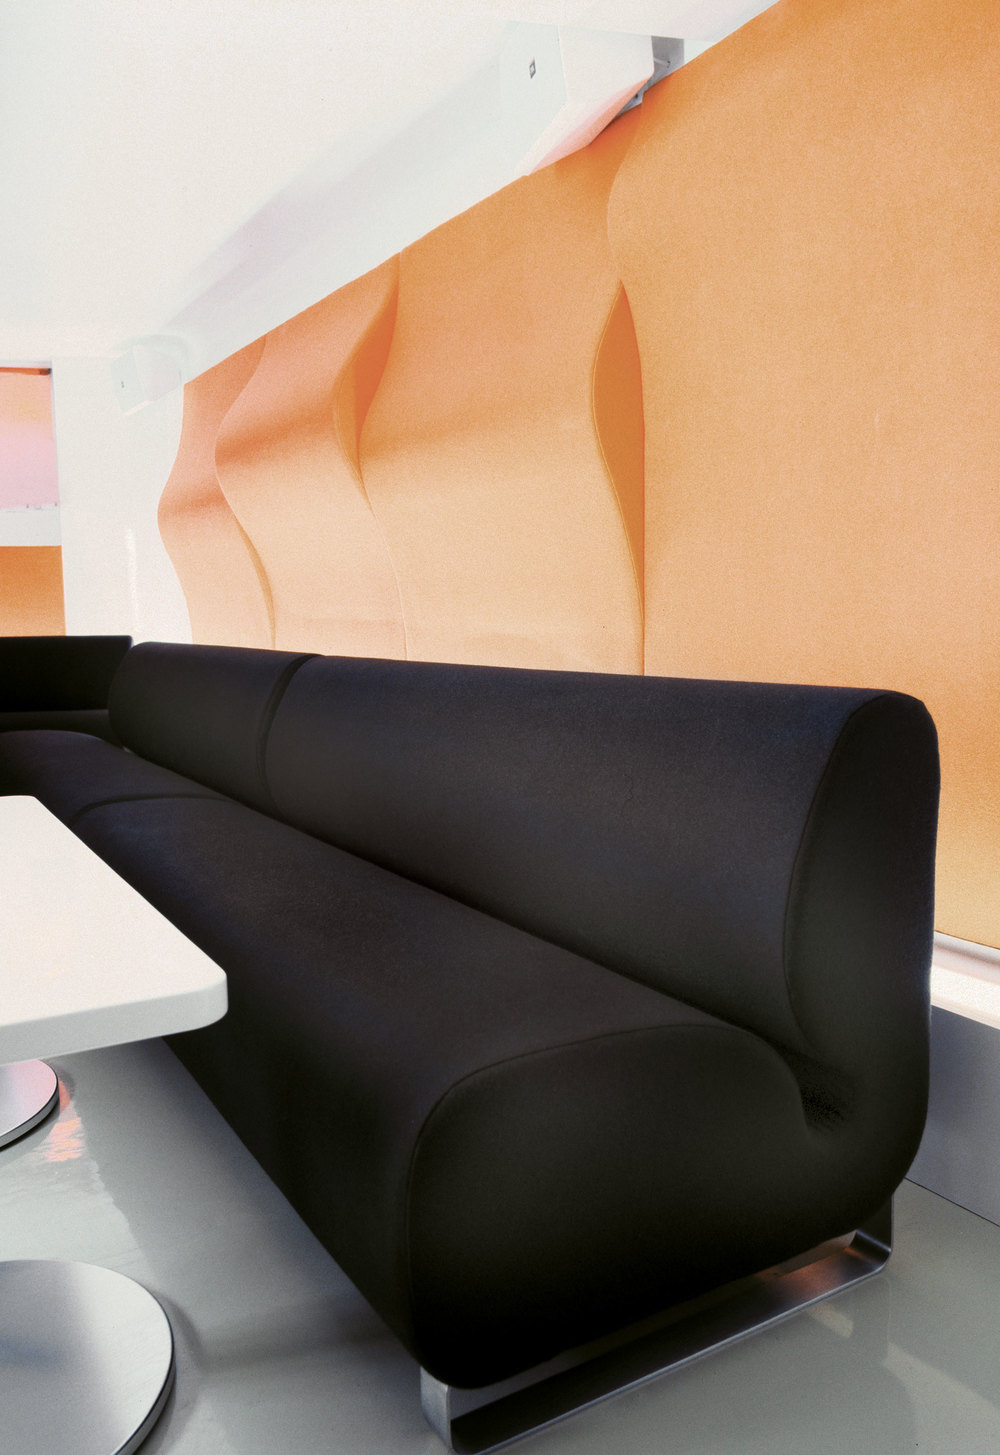 Black custom-designed sofa at Supergeil restaurant